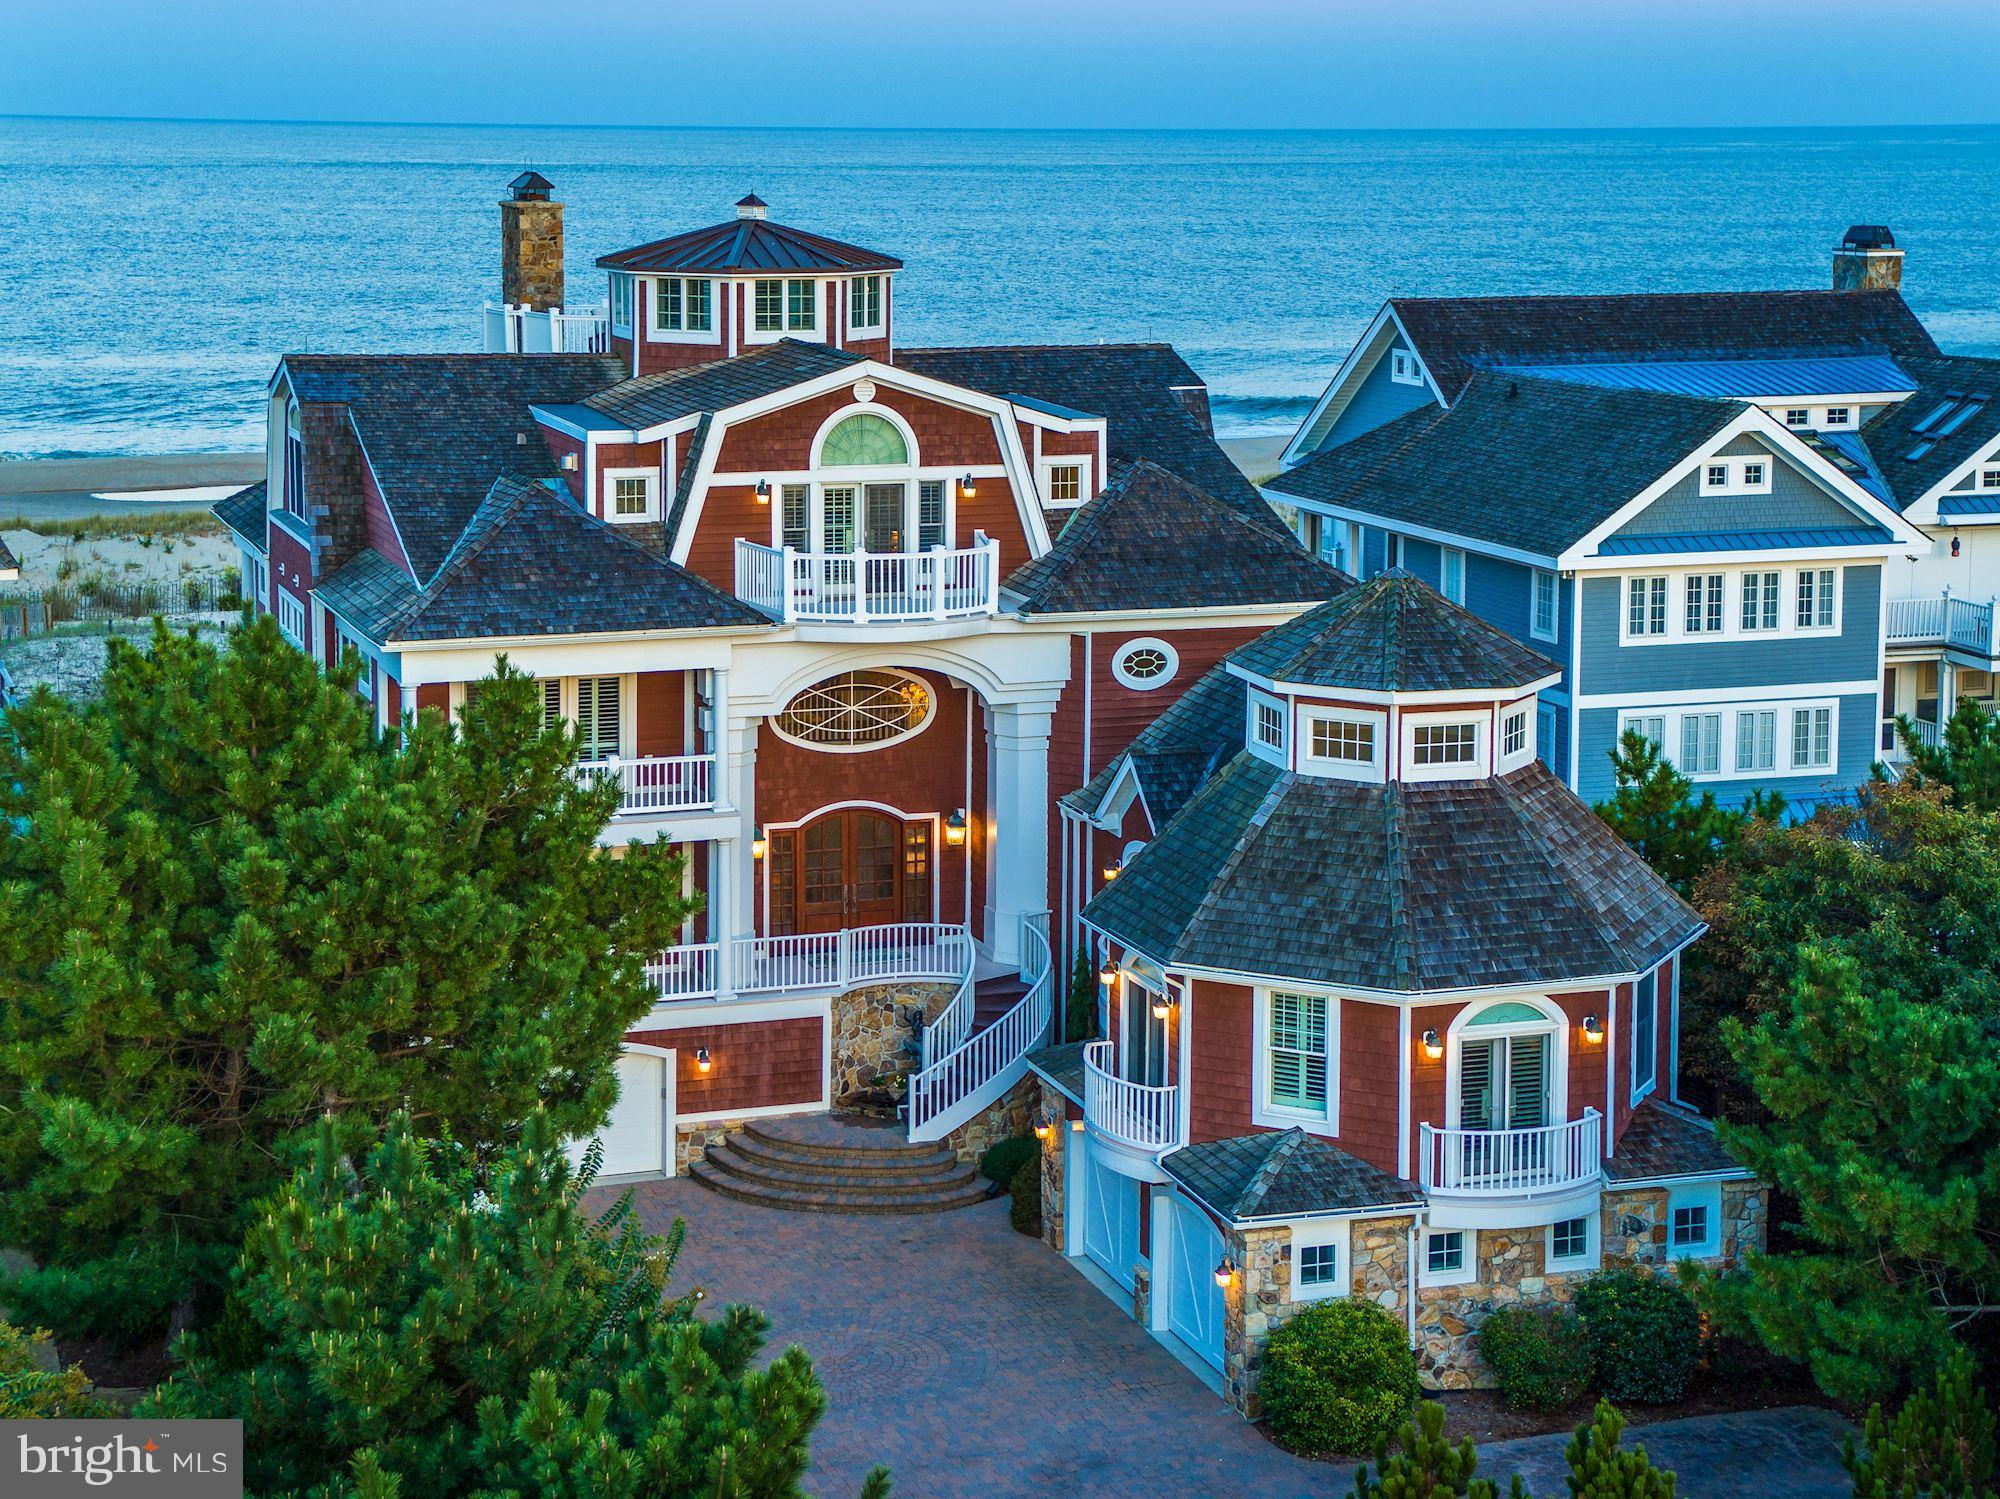 One could describe this exquisite Rehoboth Beach home with its one of a kind location, as a majestic